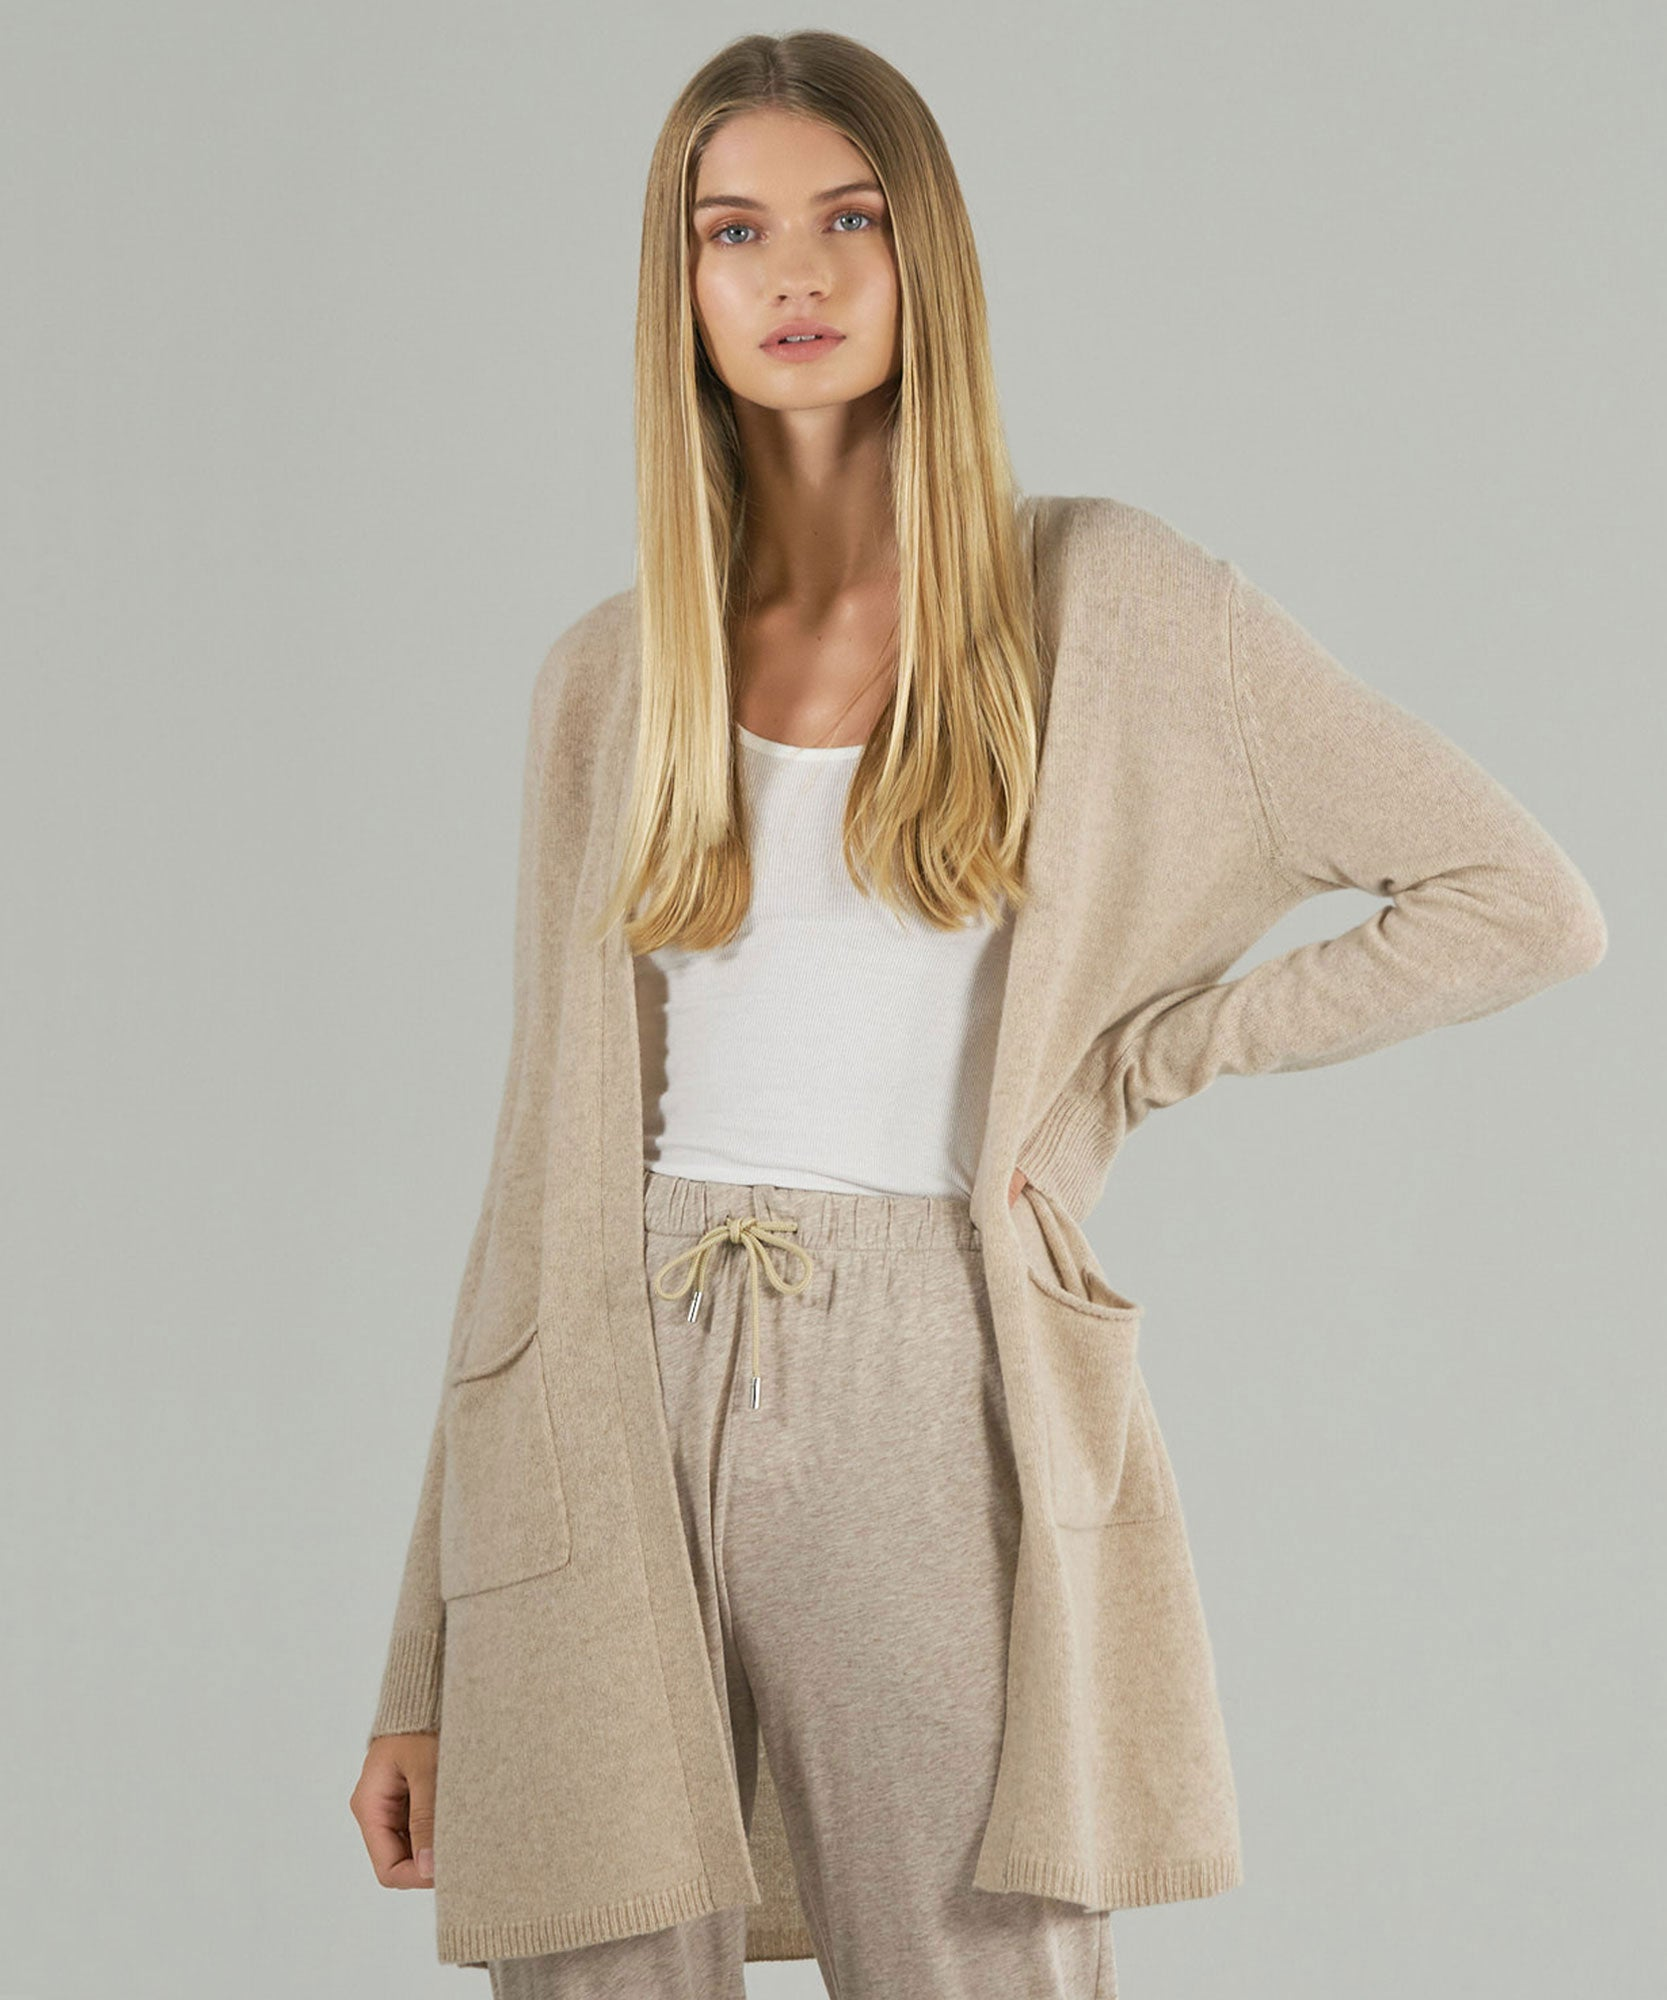 Oat Cashmere Cardigan - Women's Luxe Sweater by ATM Anthony Thomas Melillo